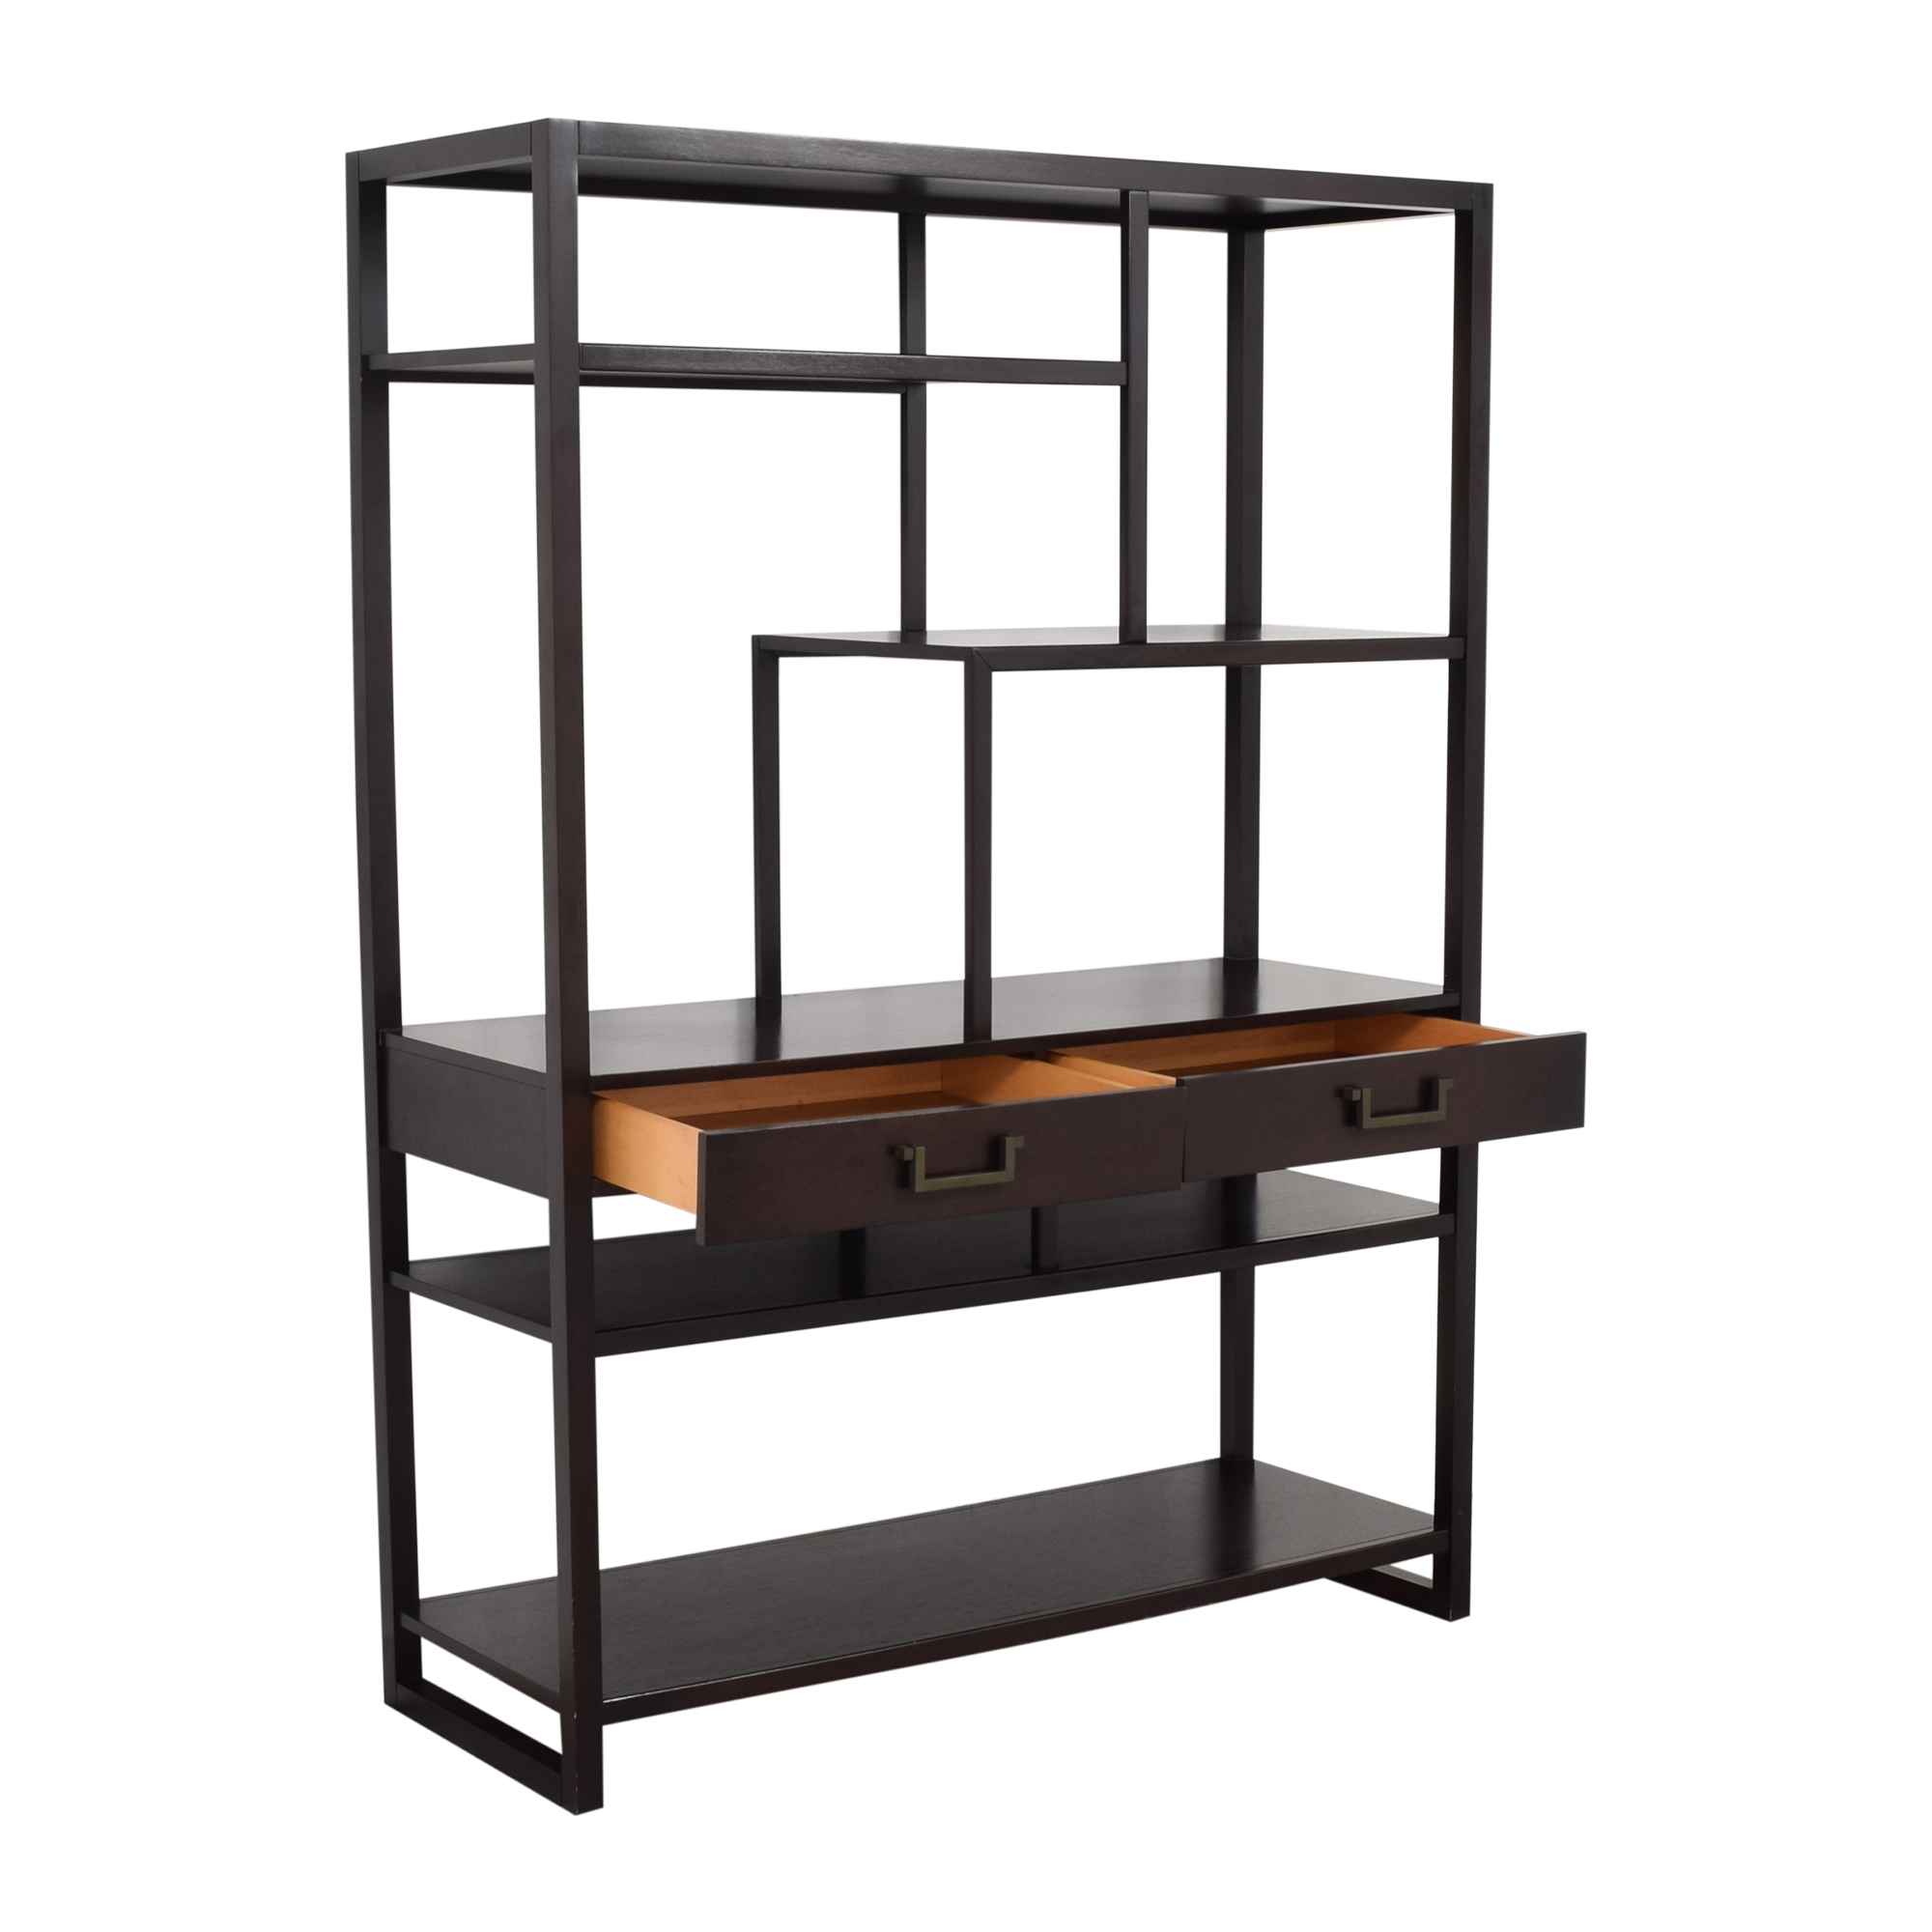 Vanguard Furniture Michael Weiss Modernism by Vanguard Furniture Wood Eterge Bookcases & Shelving